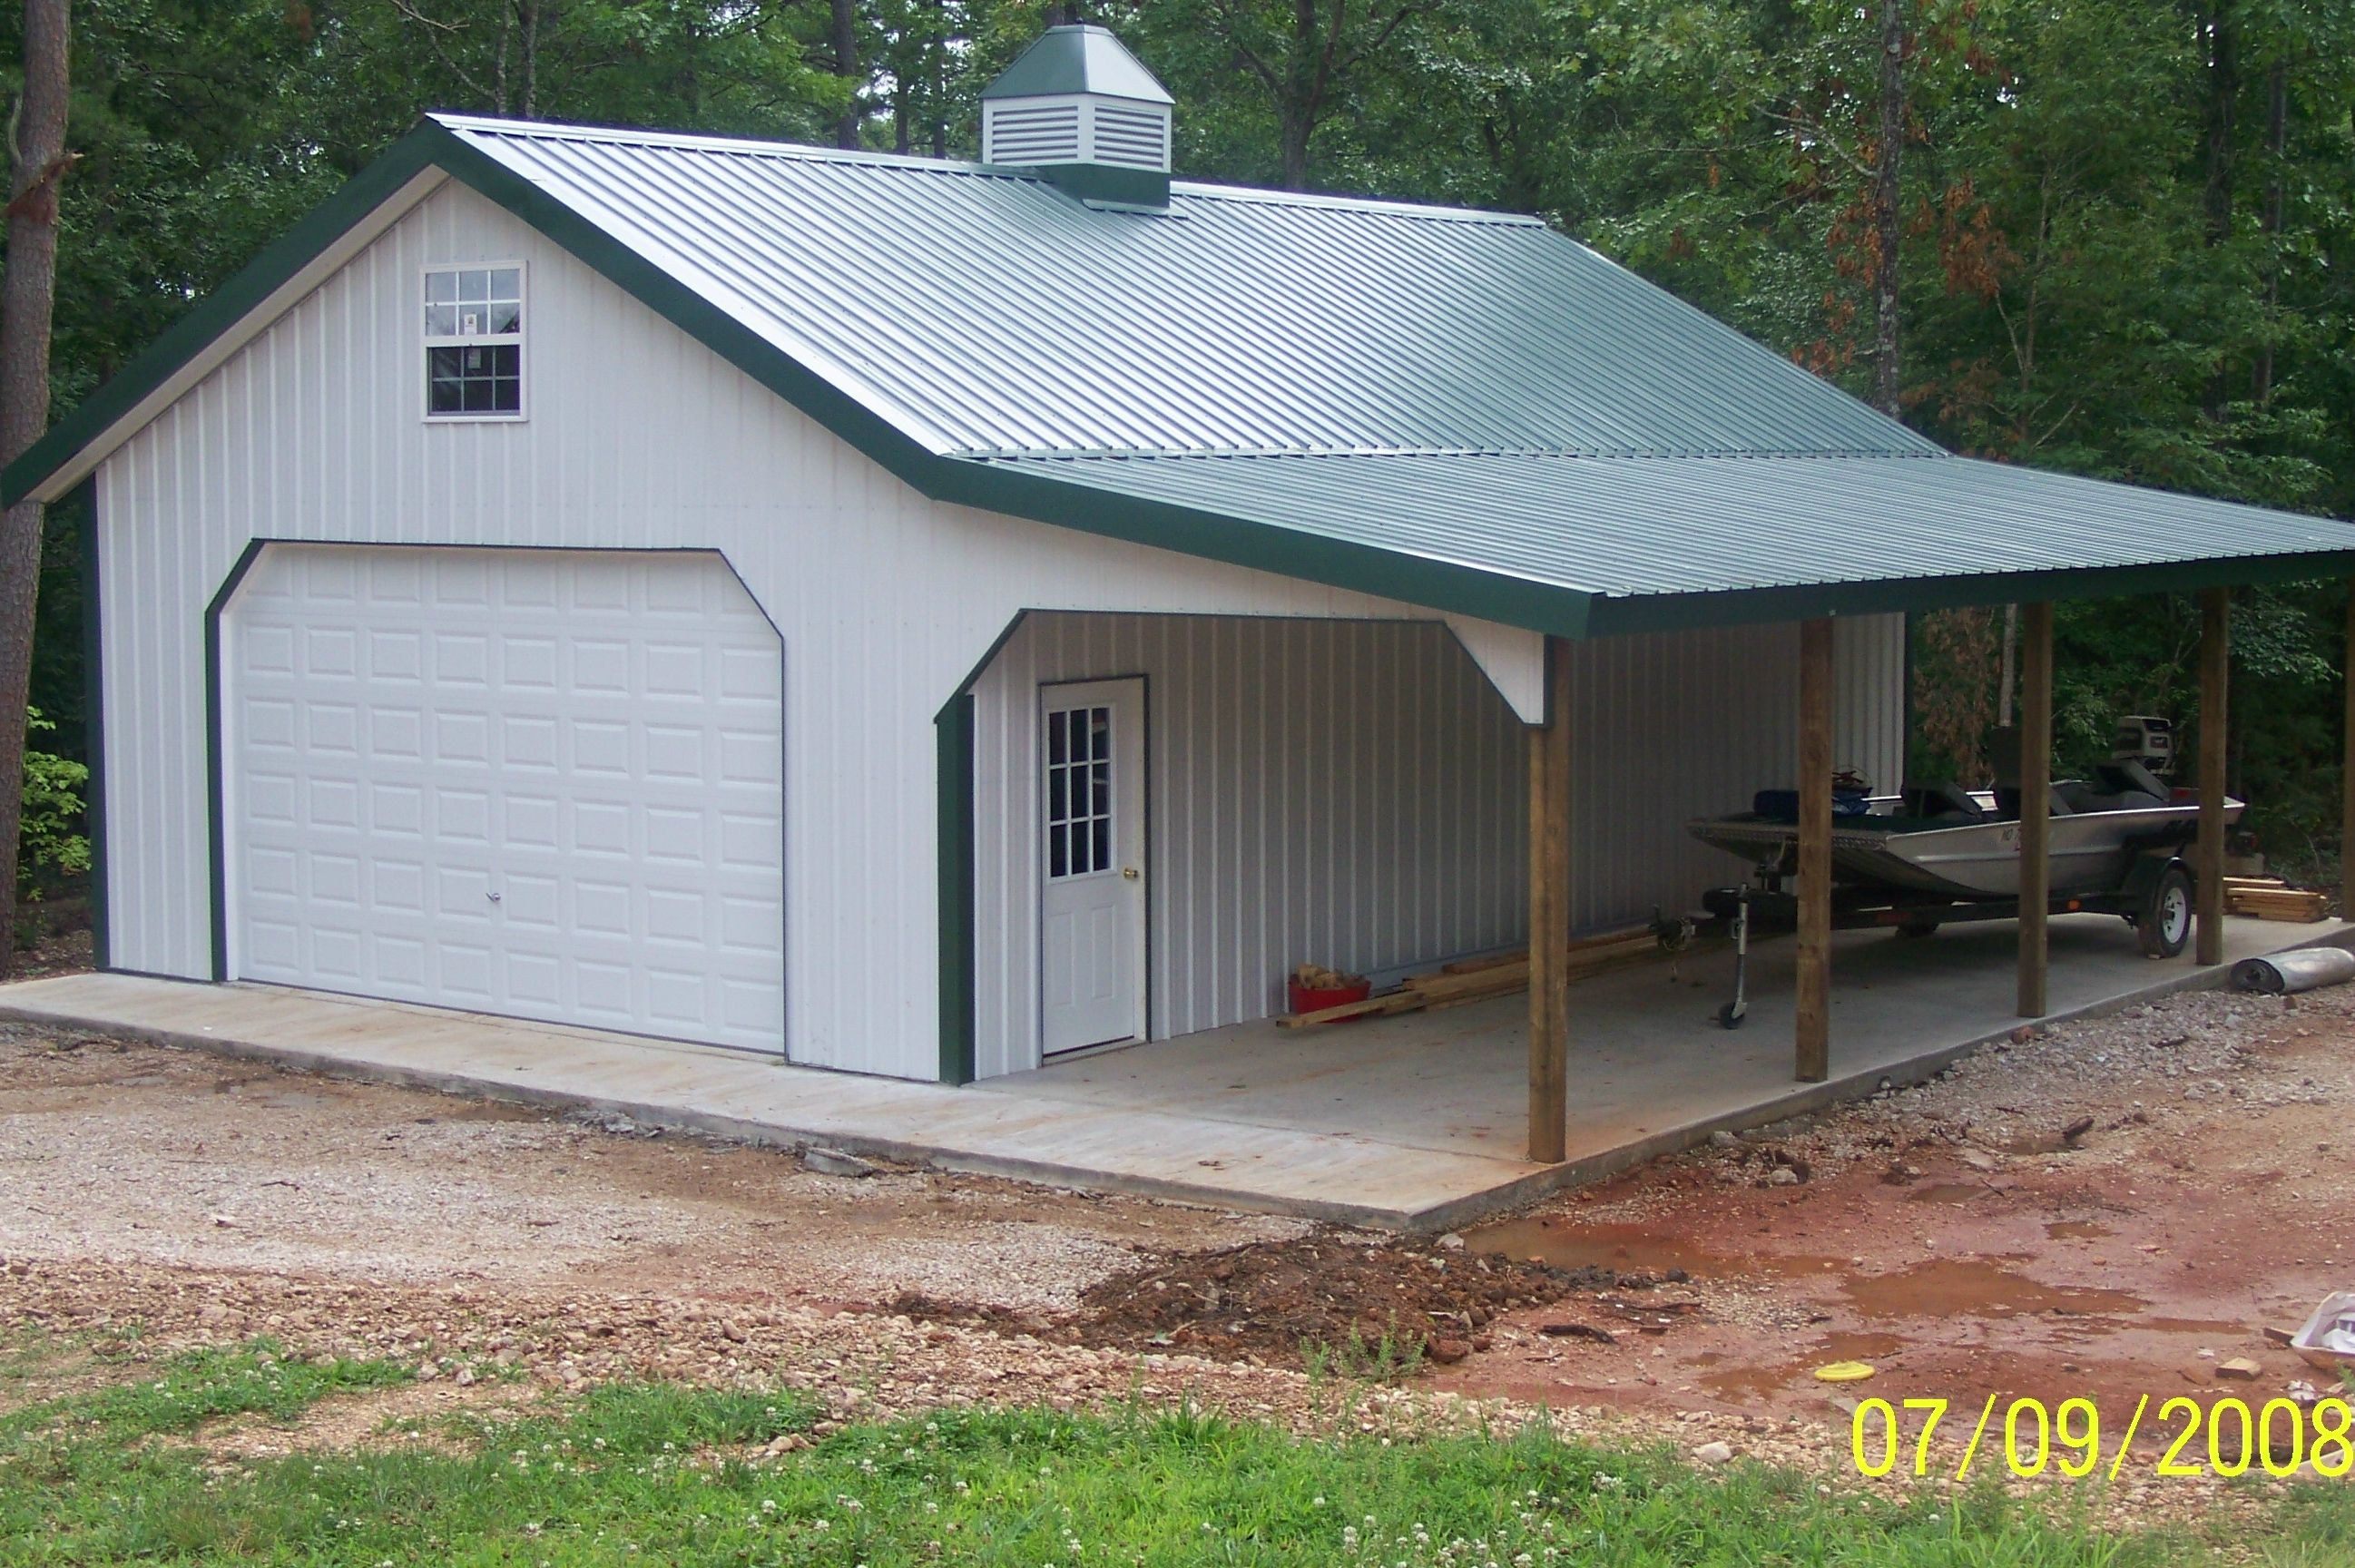 Garage Plans | 58 Garage Plans and Free DIY Building ...